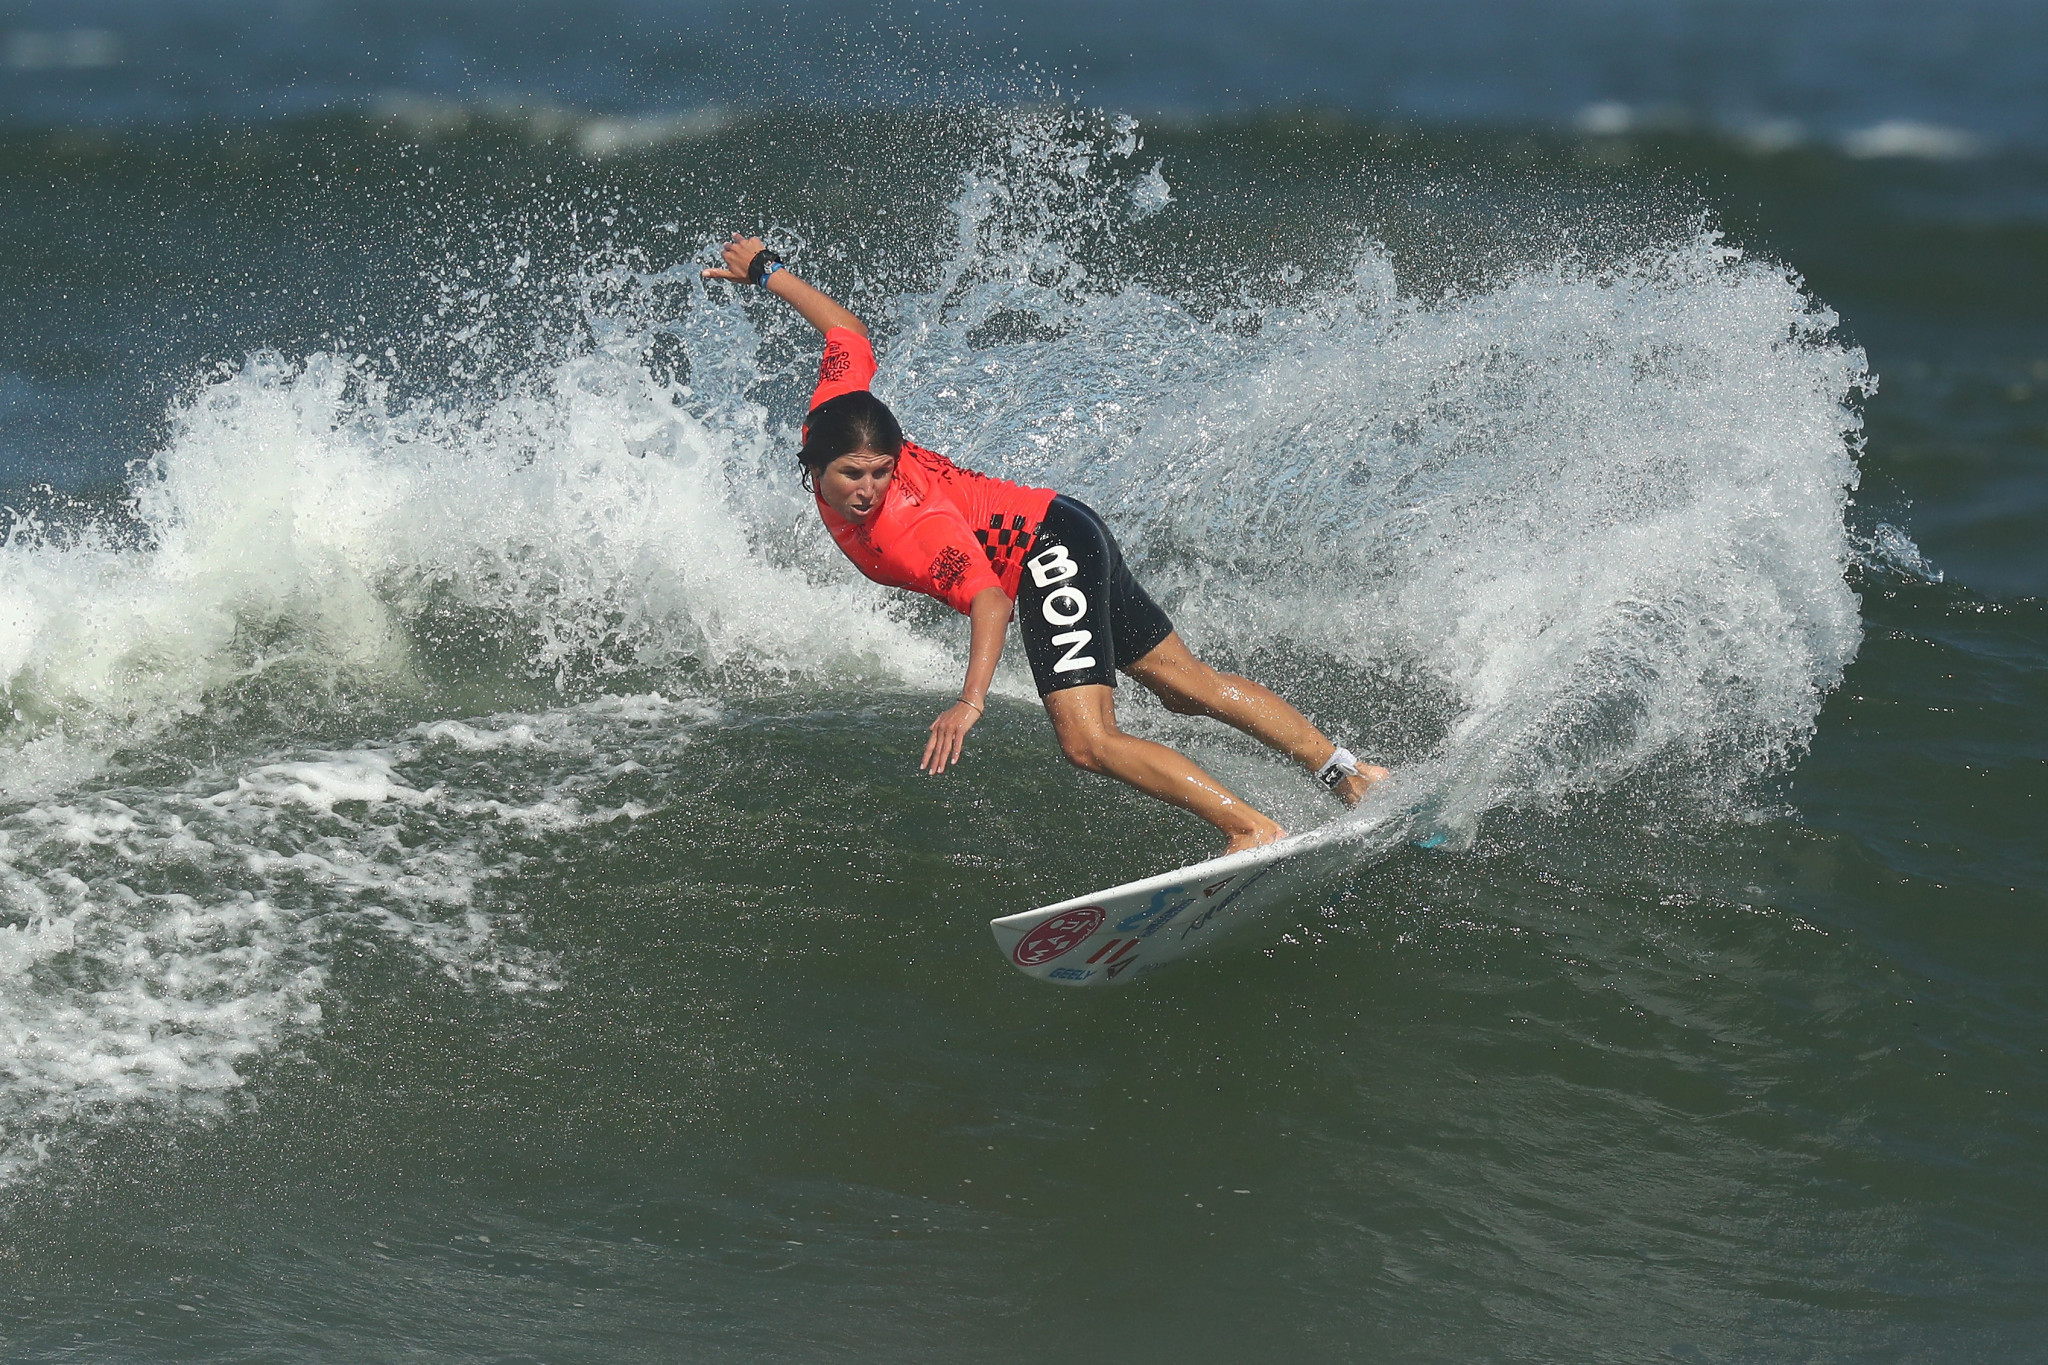 Final Olympic surfing spots to be determined at World Surfing Games in El Salvador